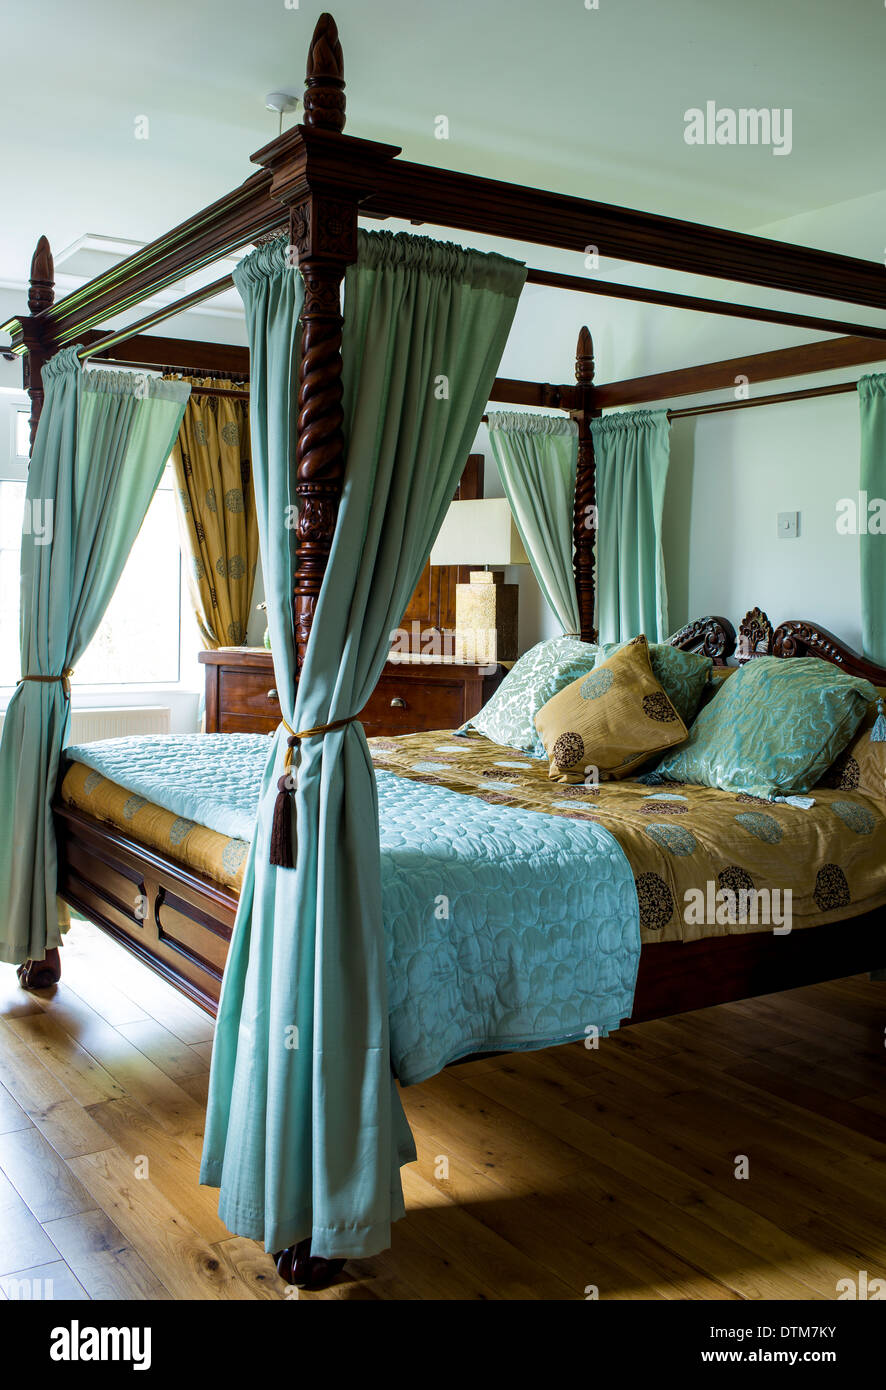 A Four Poster Bed - Stock Image